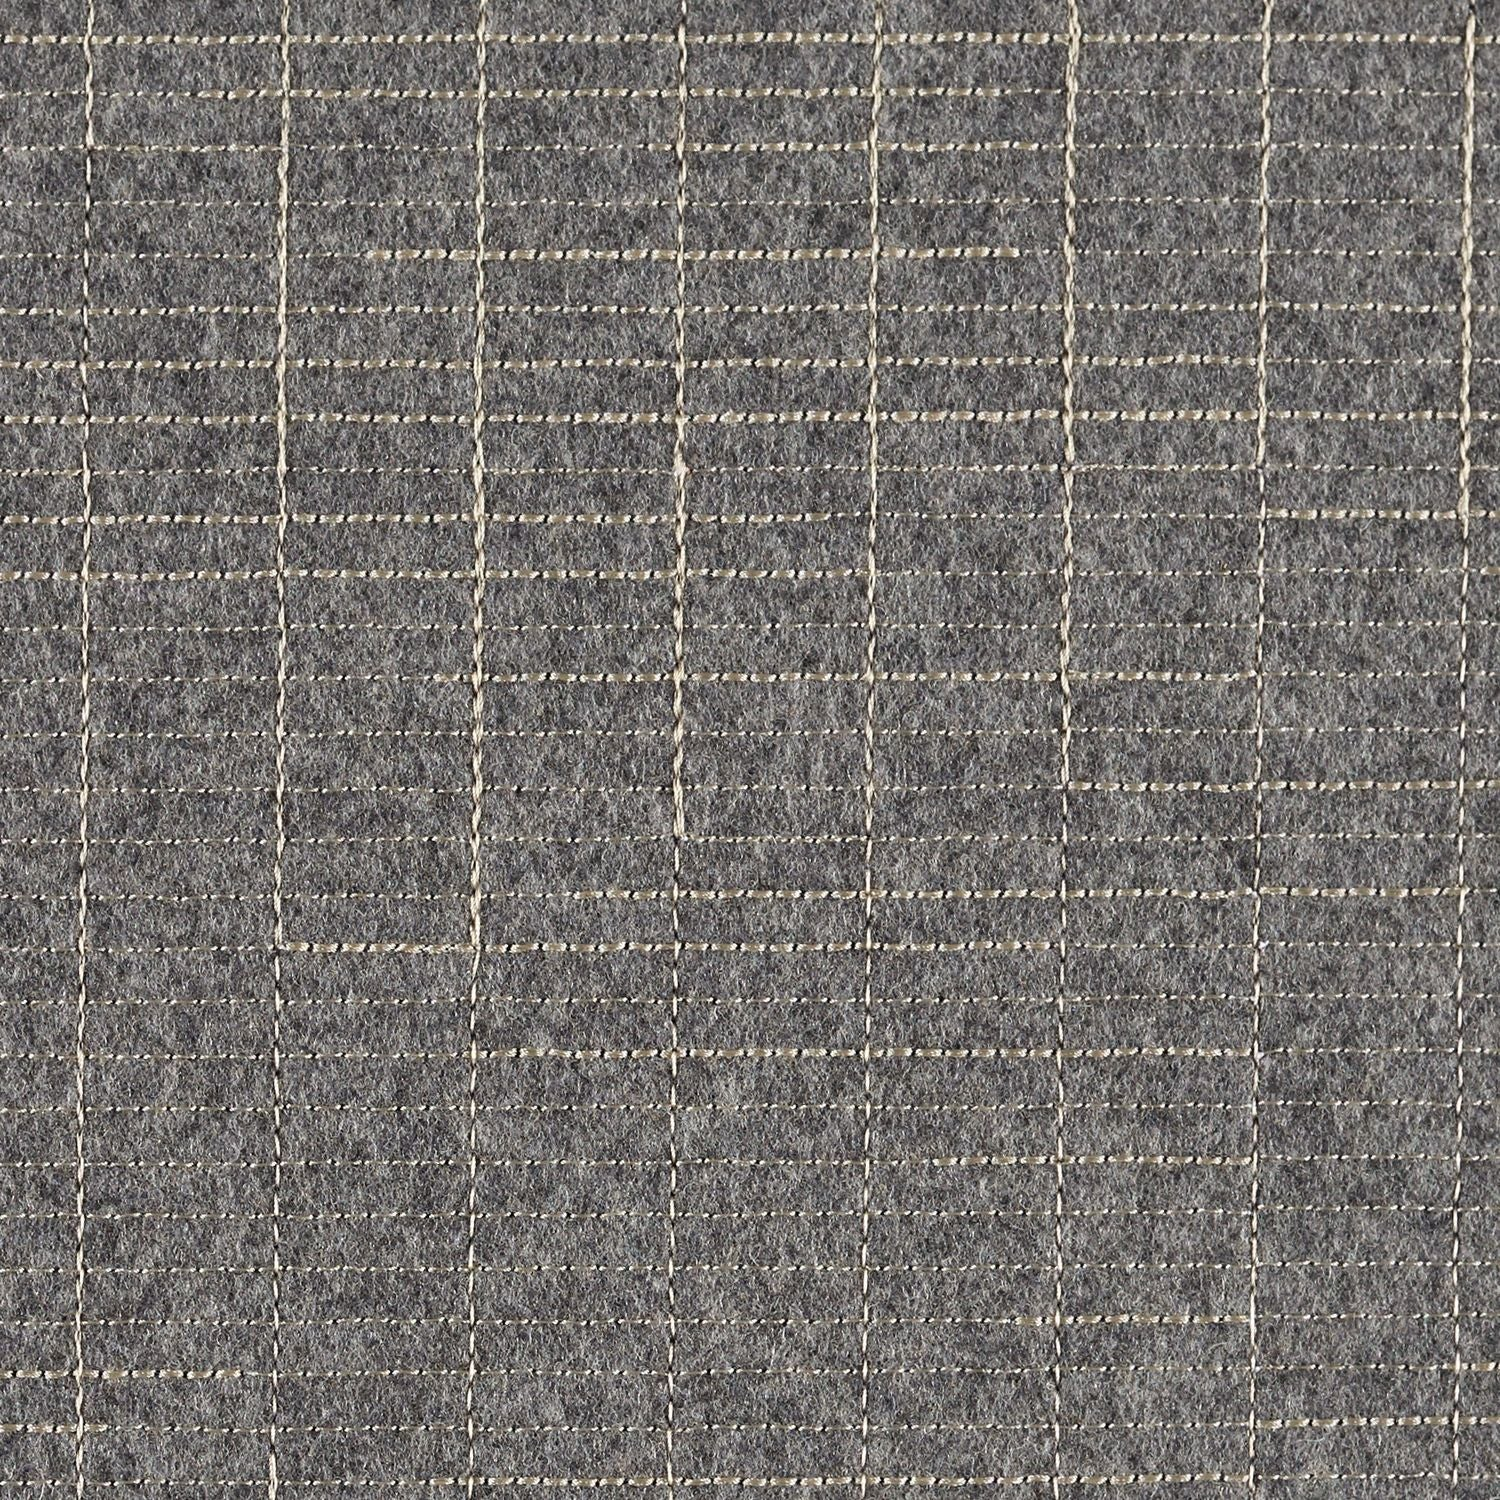 Navigate - Reticulated Stone - 4052 - 04